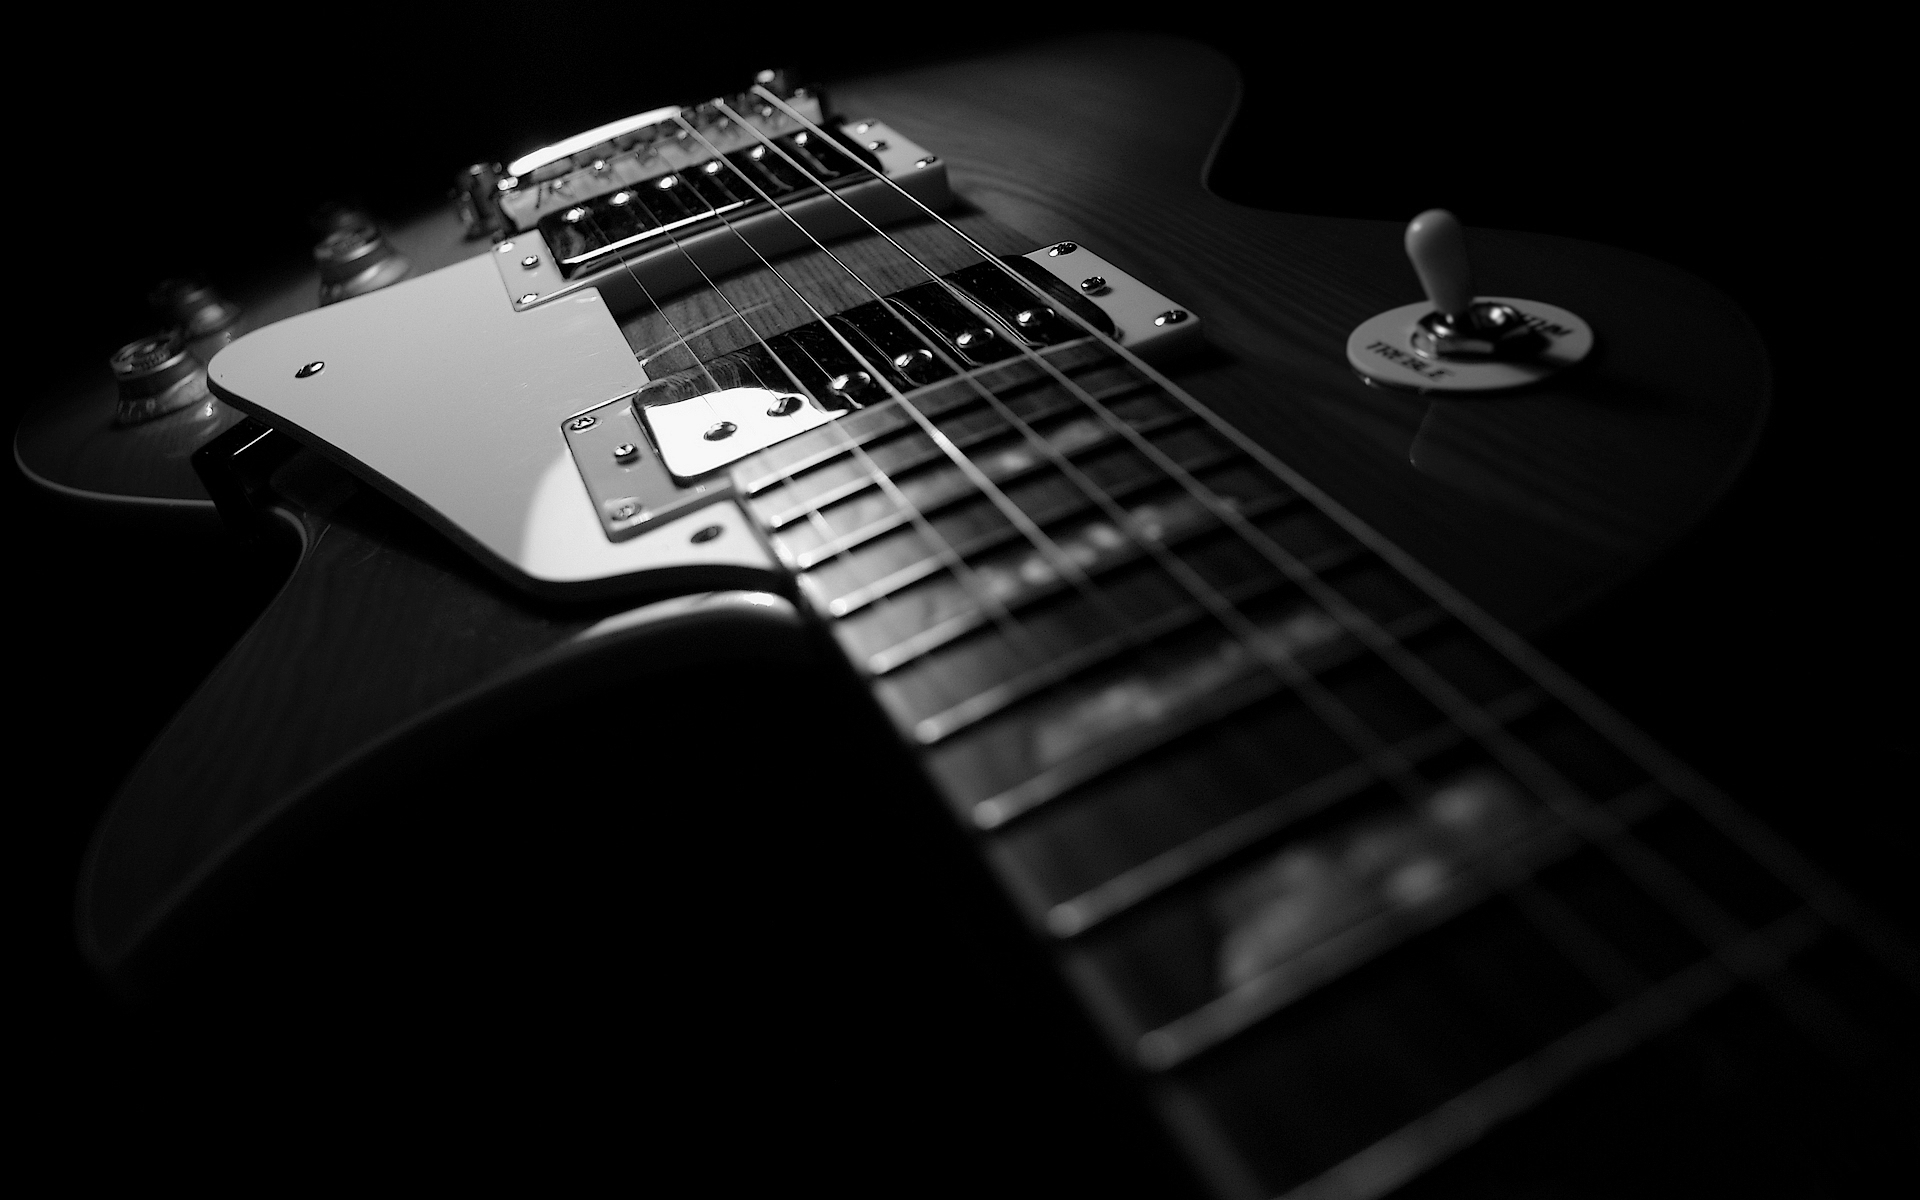 Black Guitars Background - Black Guitars Background